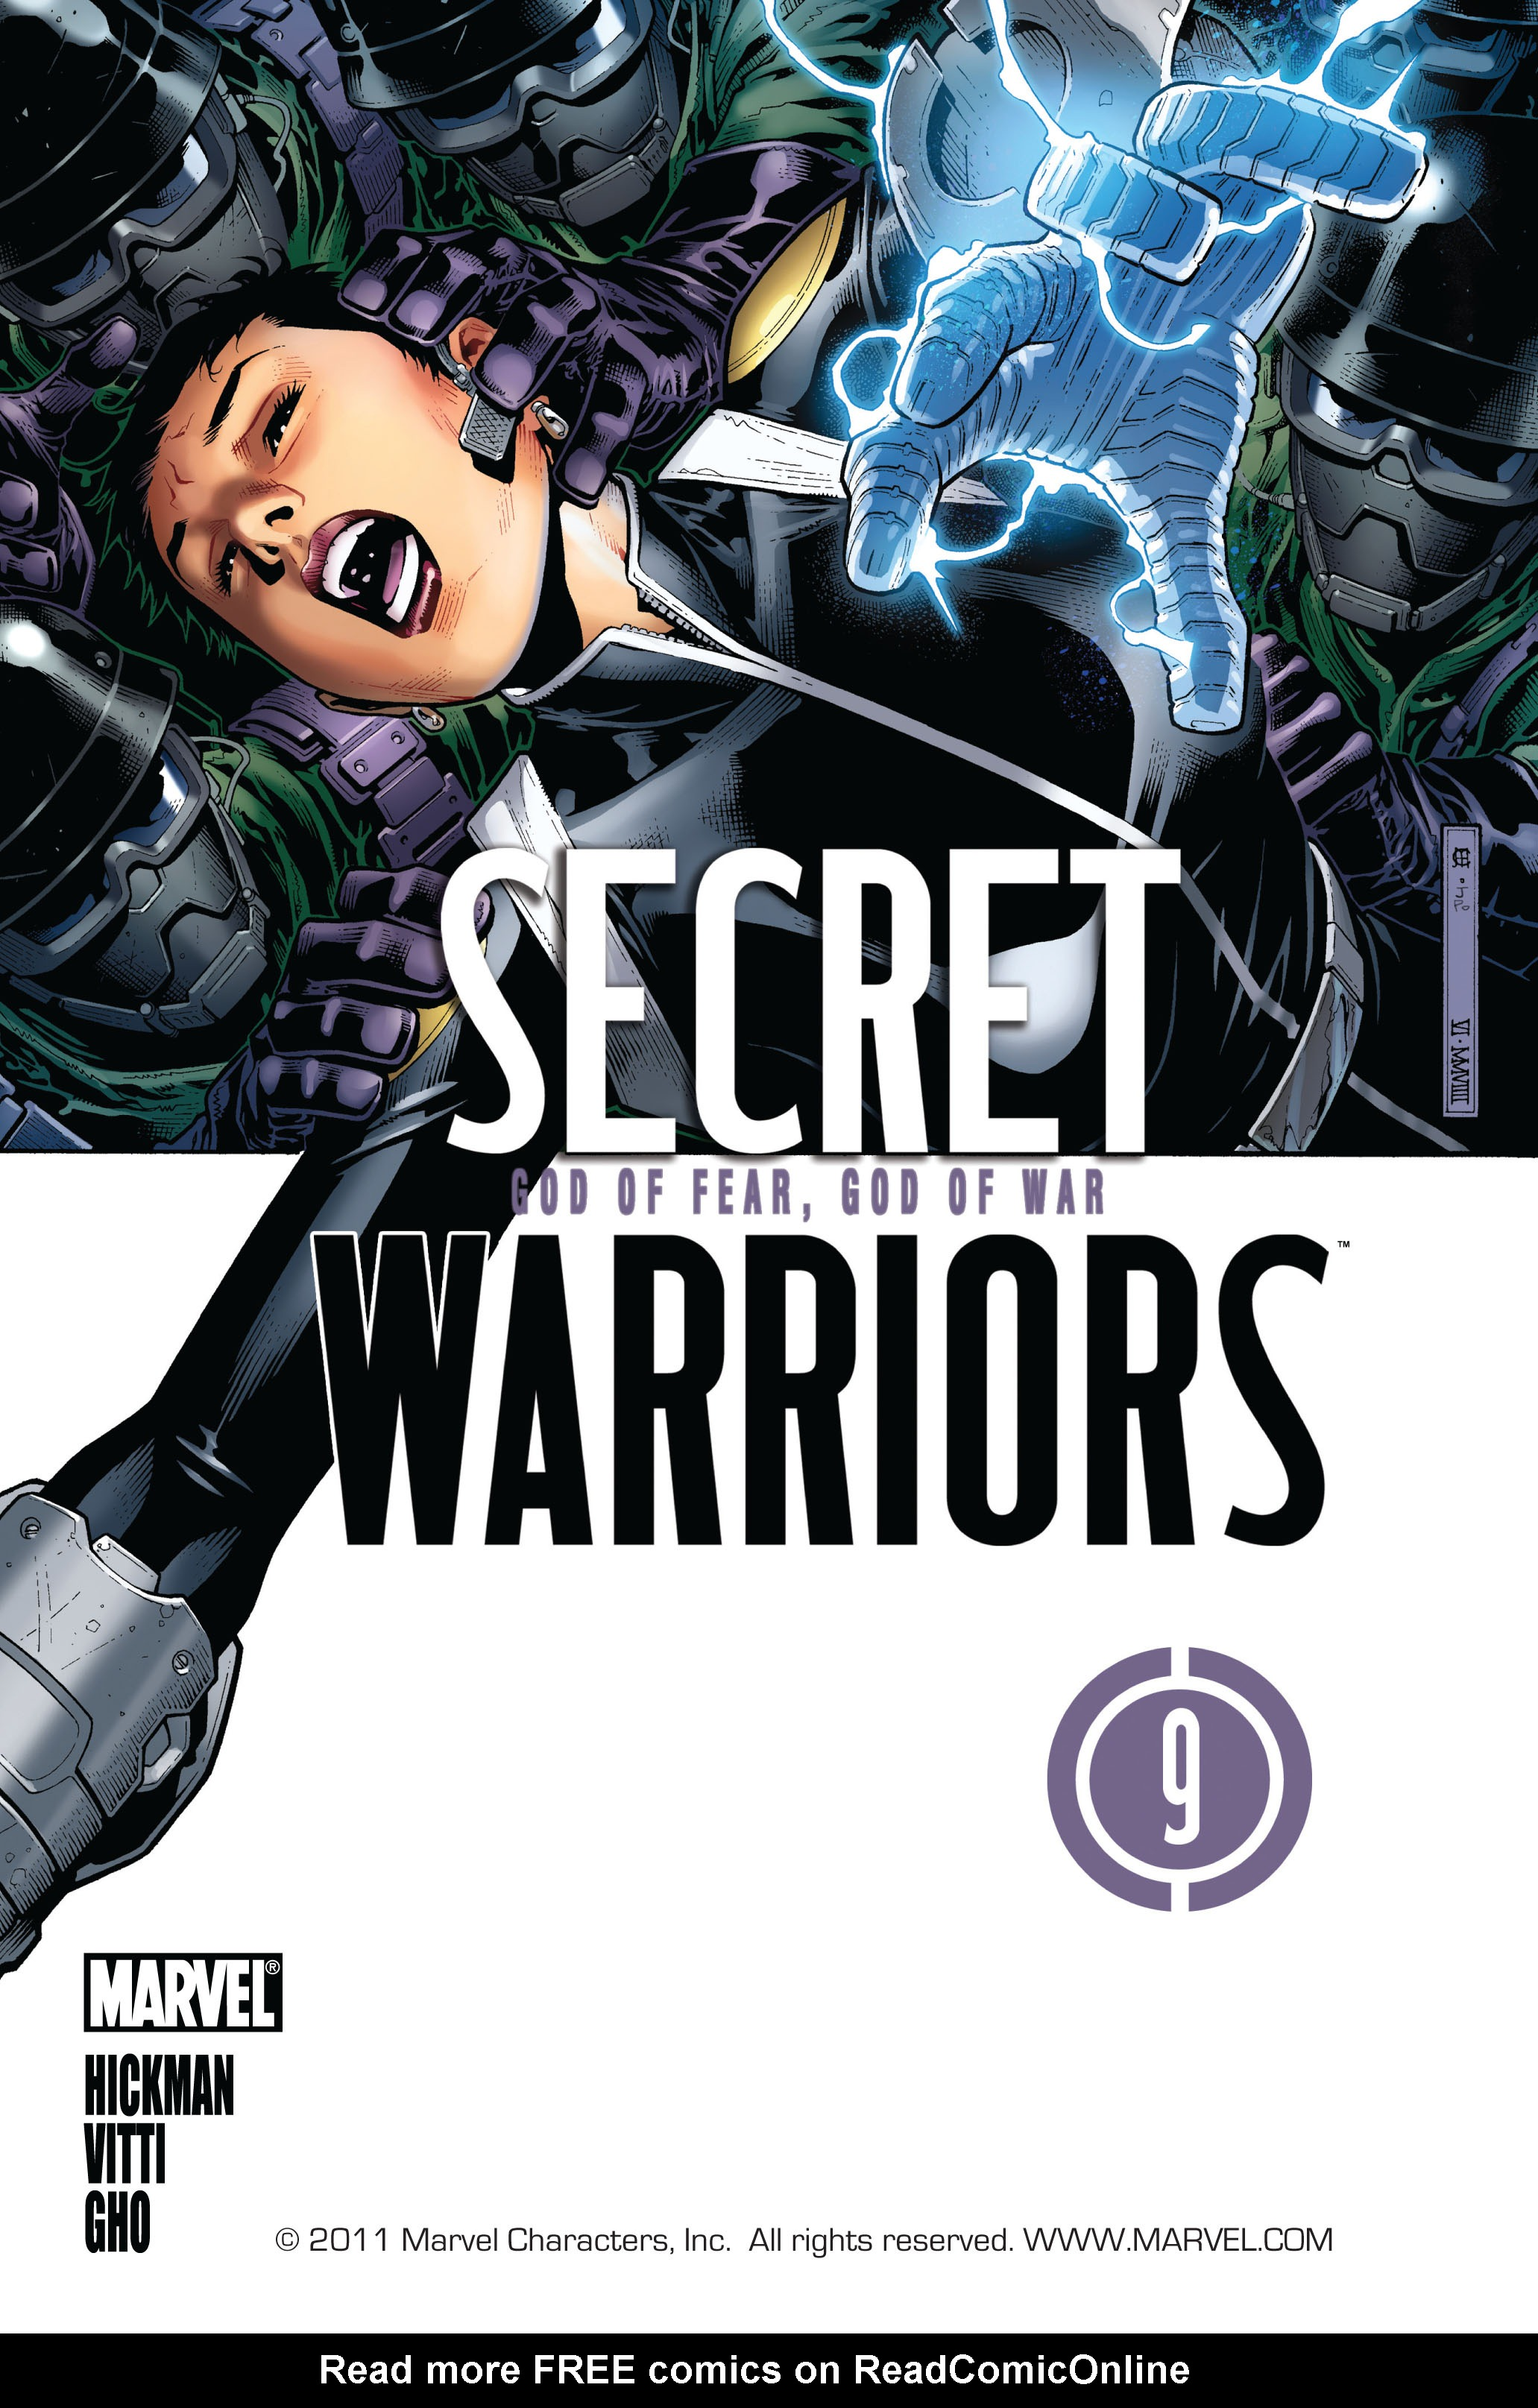 Read online Secret Warriors comic -  Issue #9 - 2